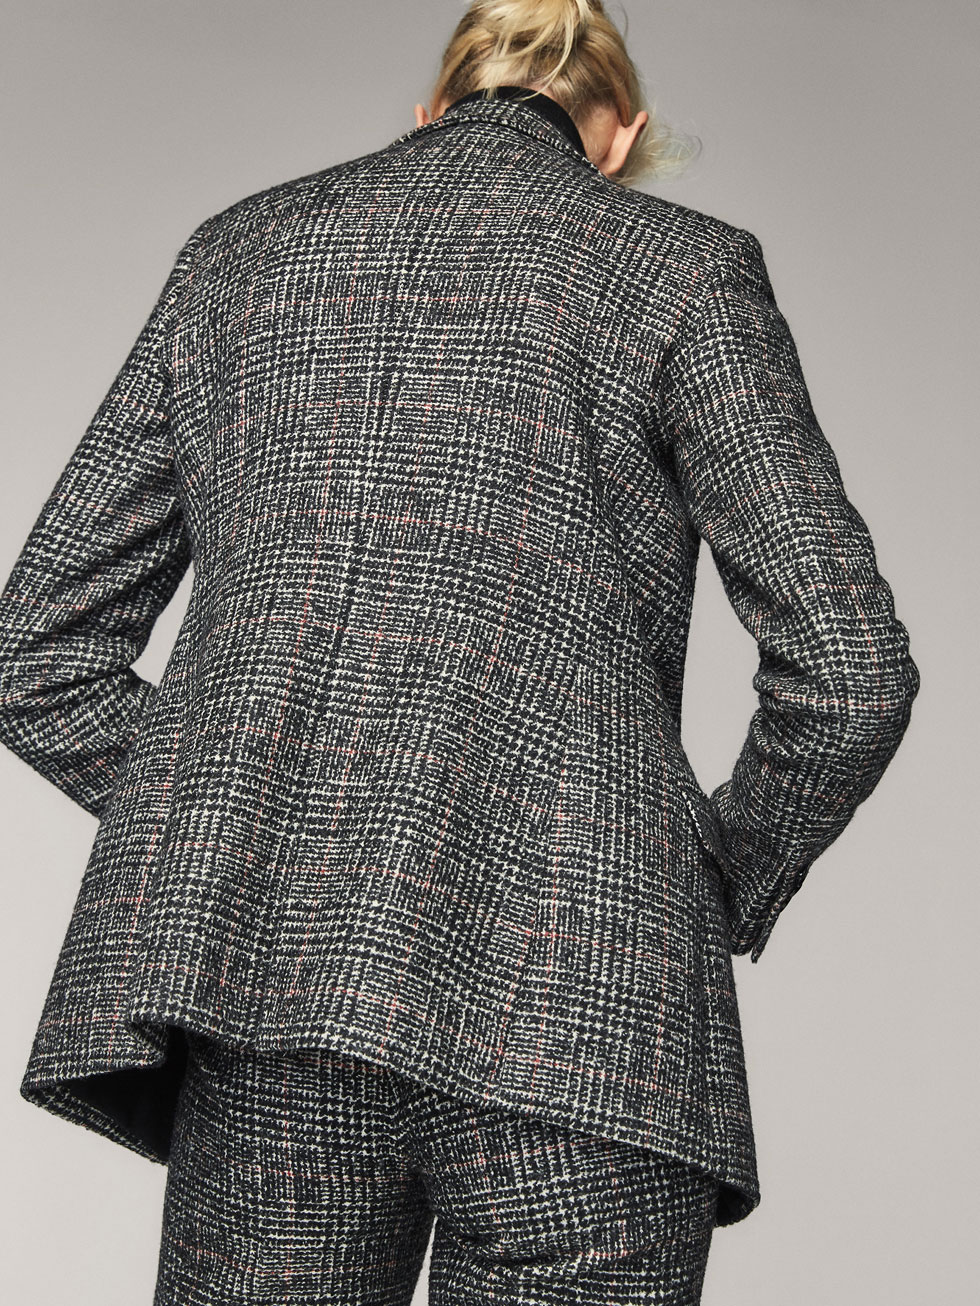 SLIM FIT EMBELLISHED WOOL DOUBLE BREASTED SUIT BLAZER - Women ...